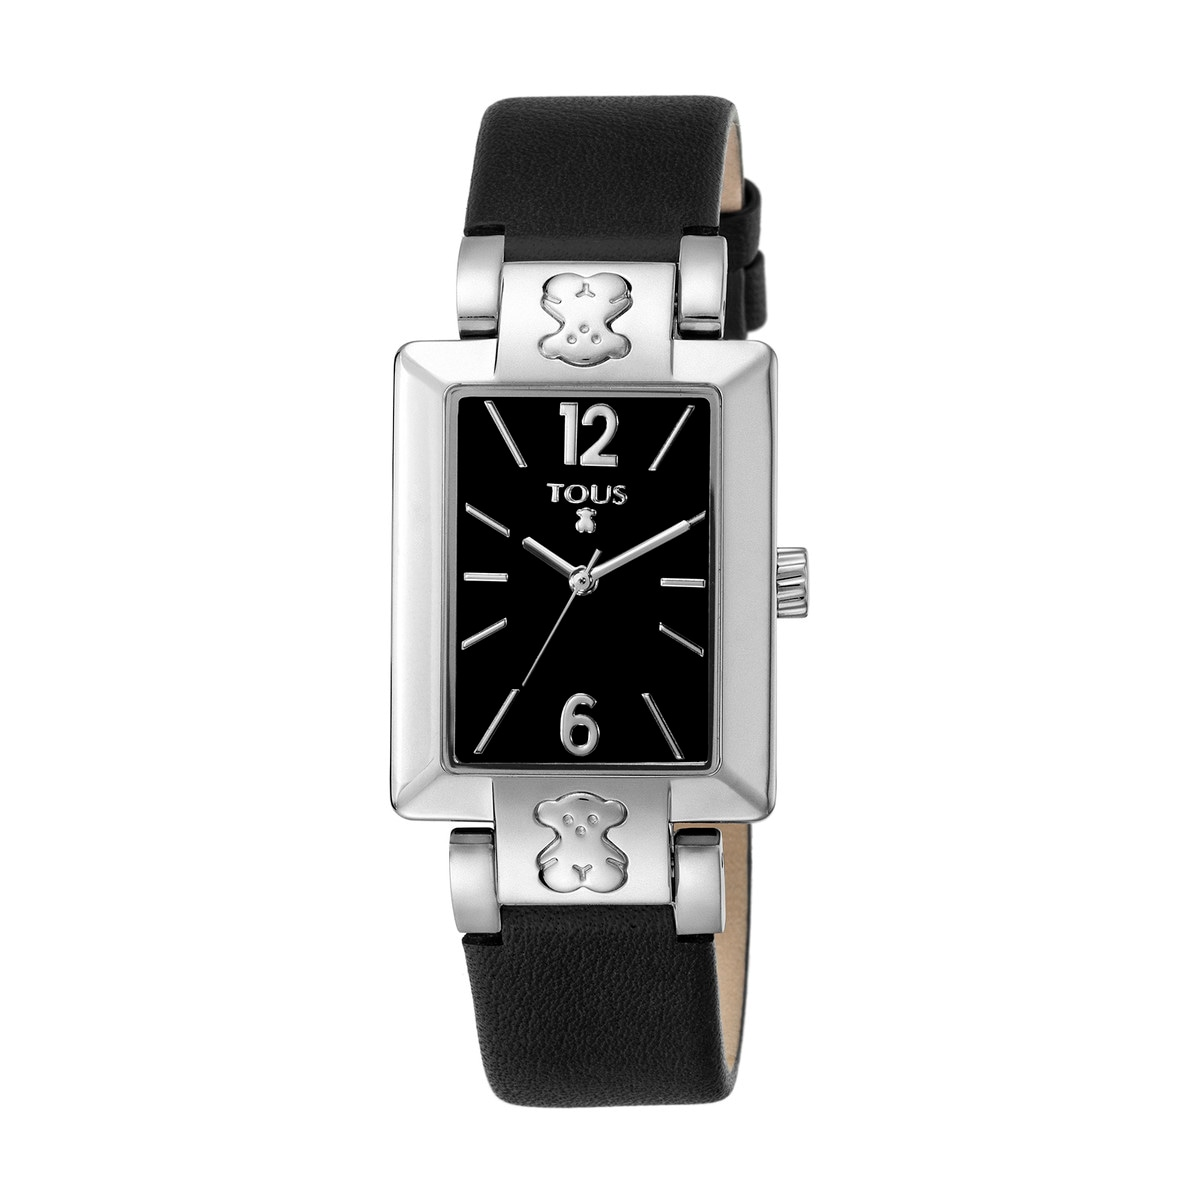 Steel Plate SQ Watch with black Leather strap